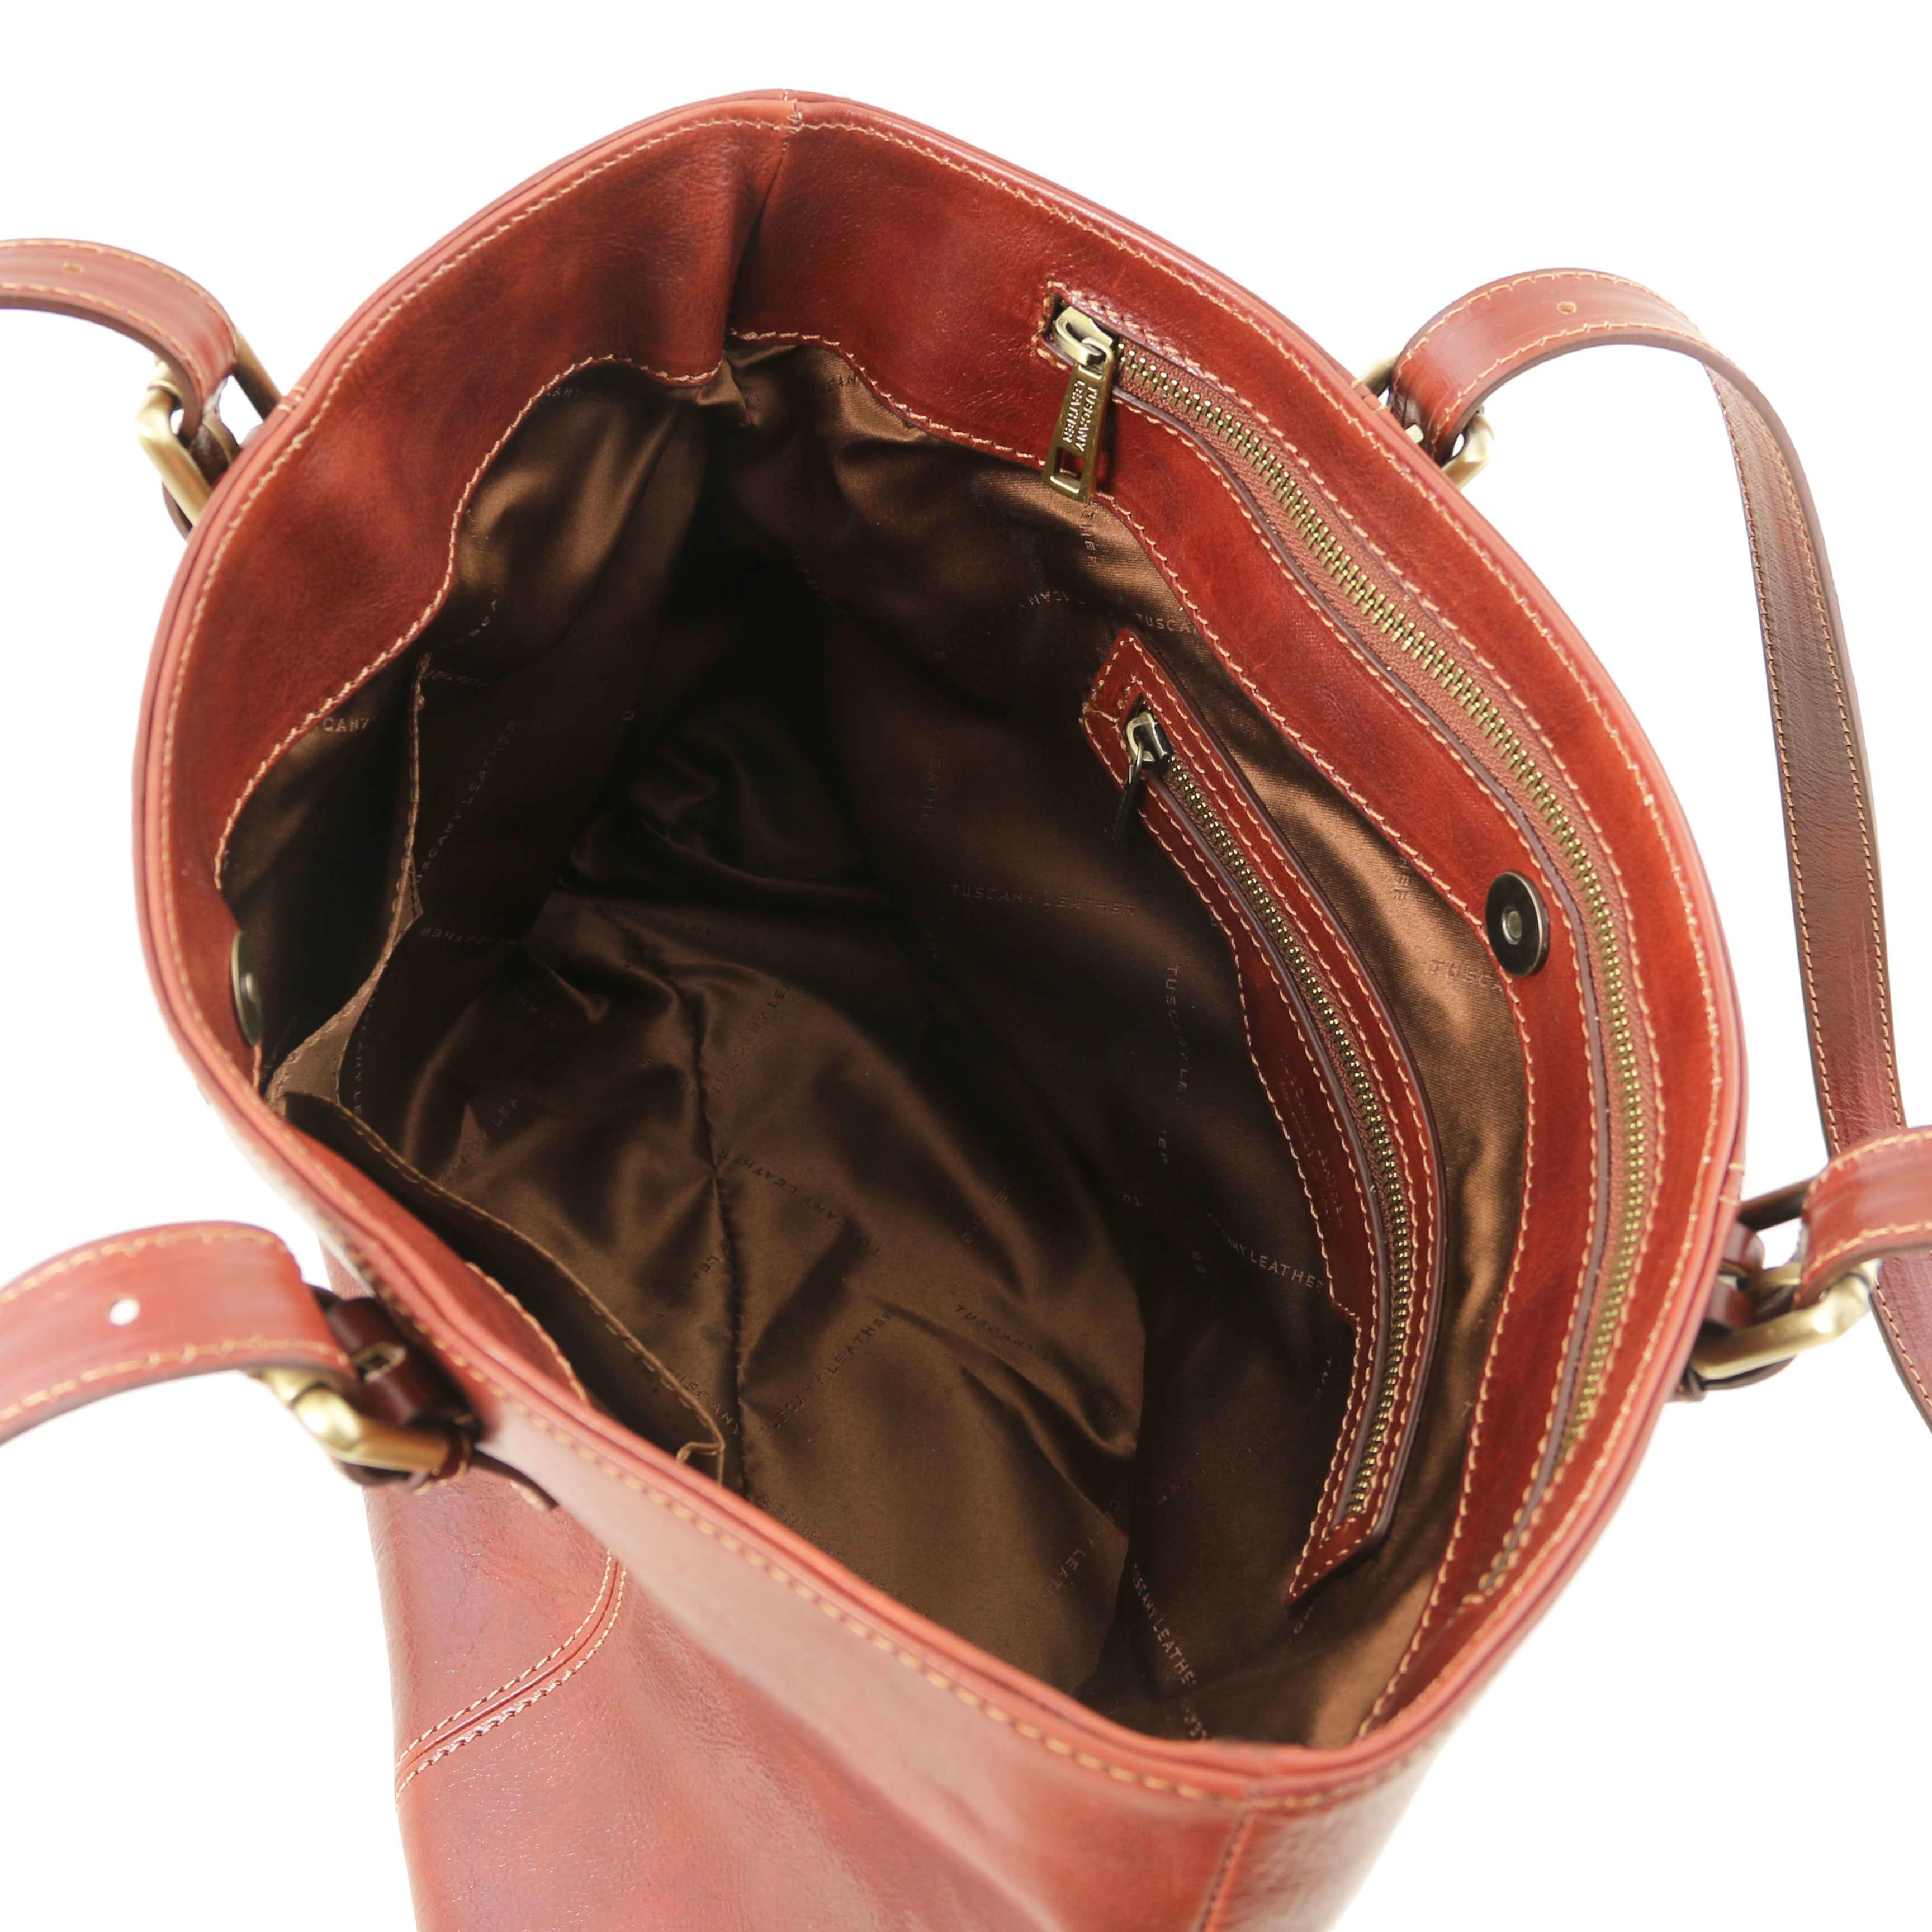 TL141710 Tuscany Leather Shopper - Business Tote Shoulder Bag